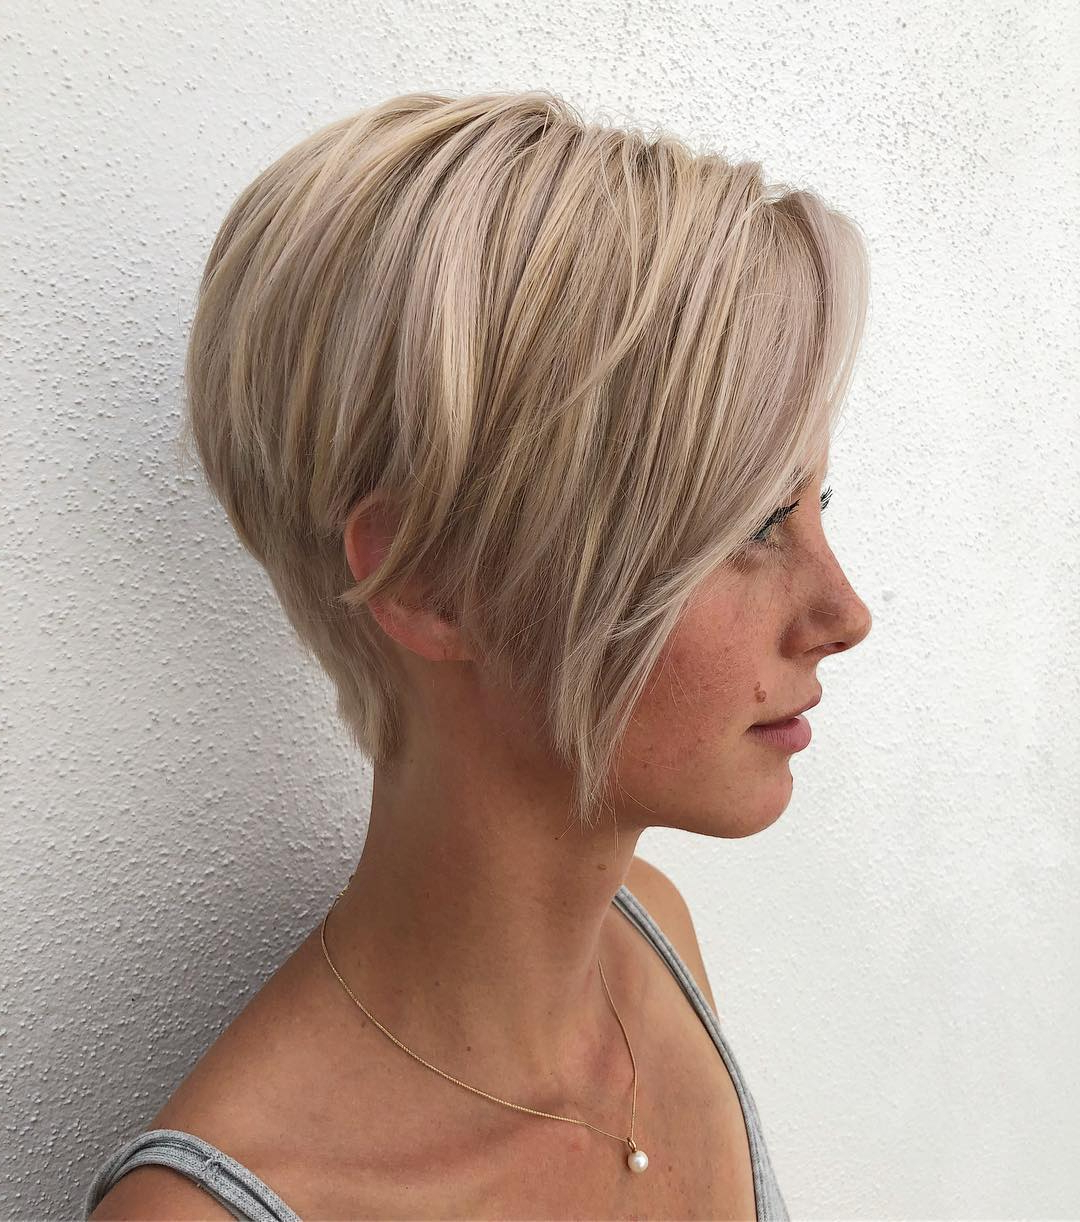 50 Head Turning Hairstyles For Thin Hair To Flaunt In 2020 Inside Popular Short Feathered Bob Crop Hairstyles (View 4 of 20)